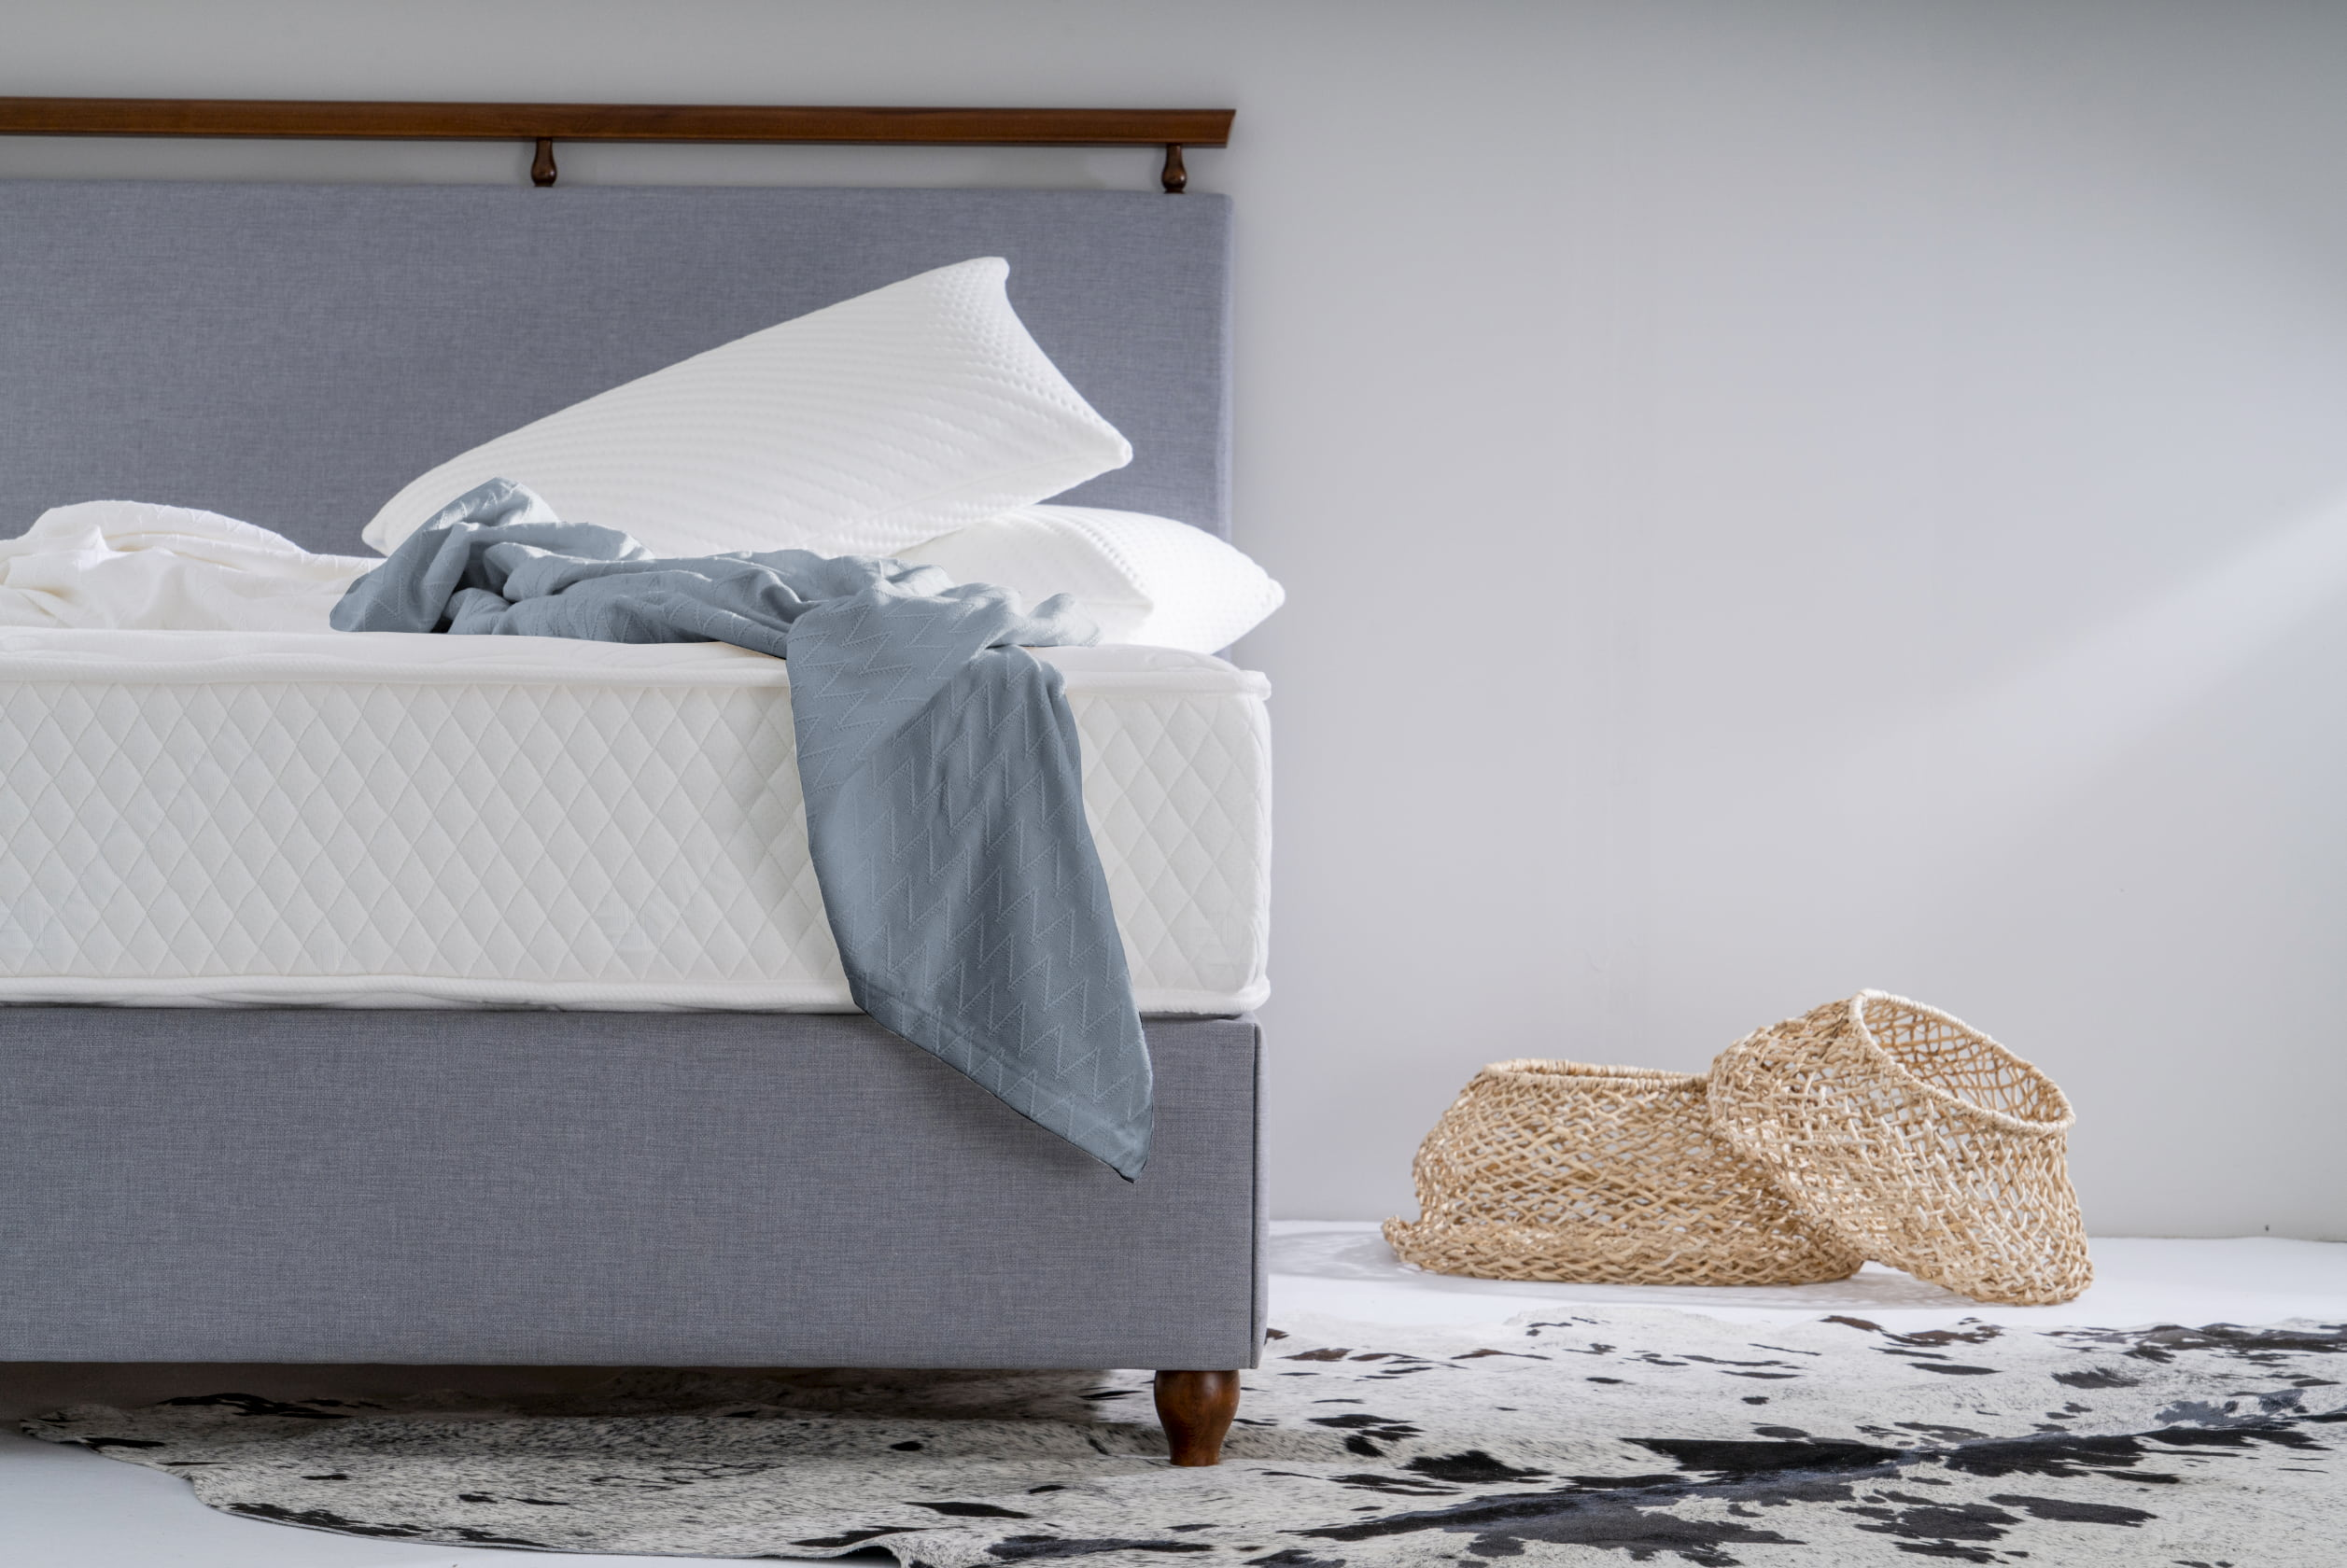 Epnus Handmade Mattresses, Brand & Product Identity - Artware